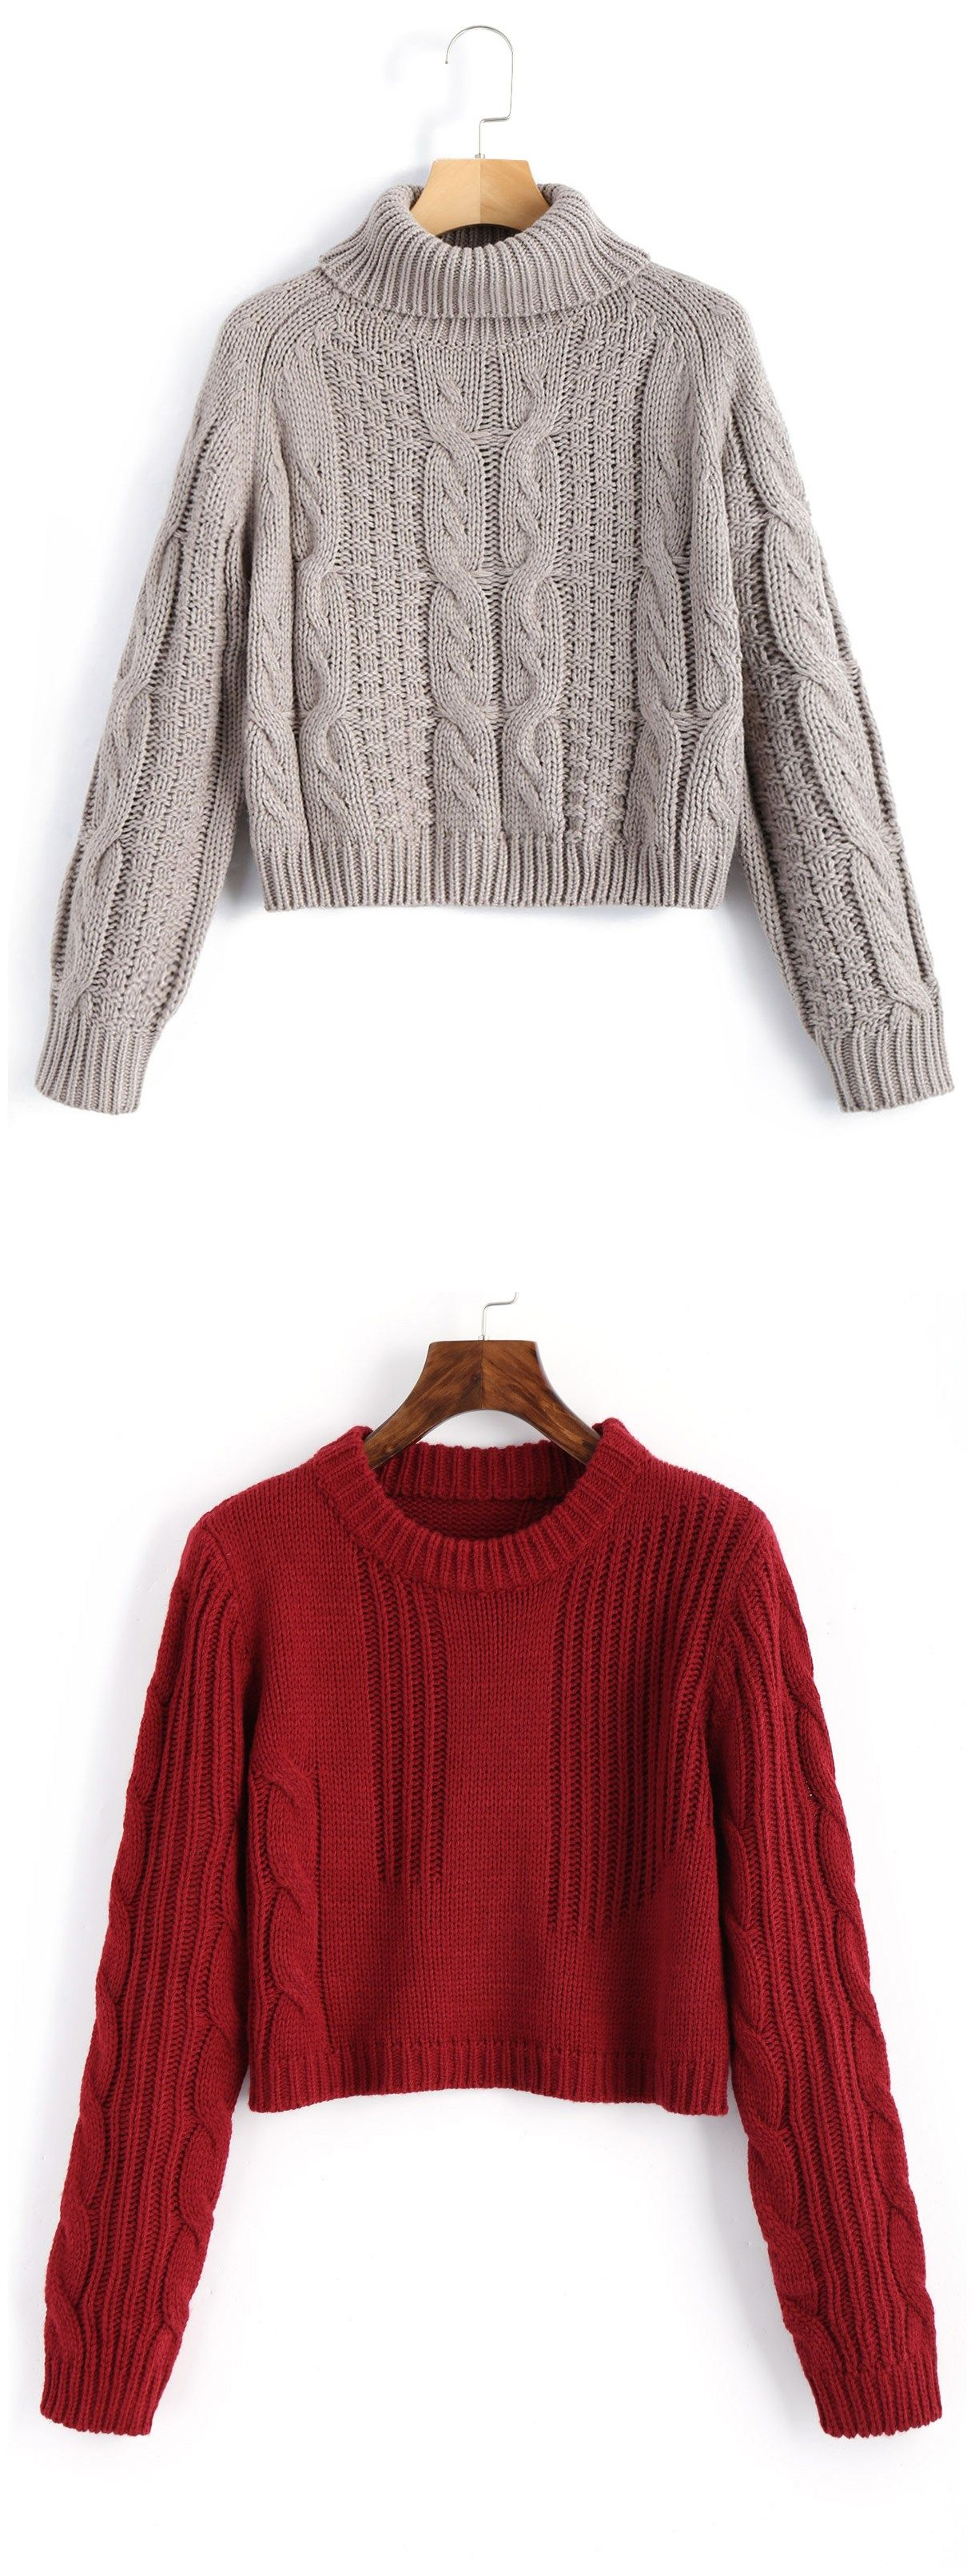 4e48b468f9 Up to 68% OFF! Cable Knit Panel Pullover Cropped Sweater.  Zaful ...